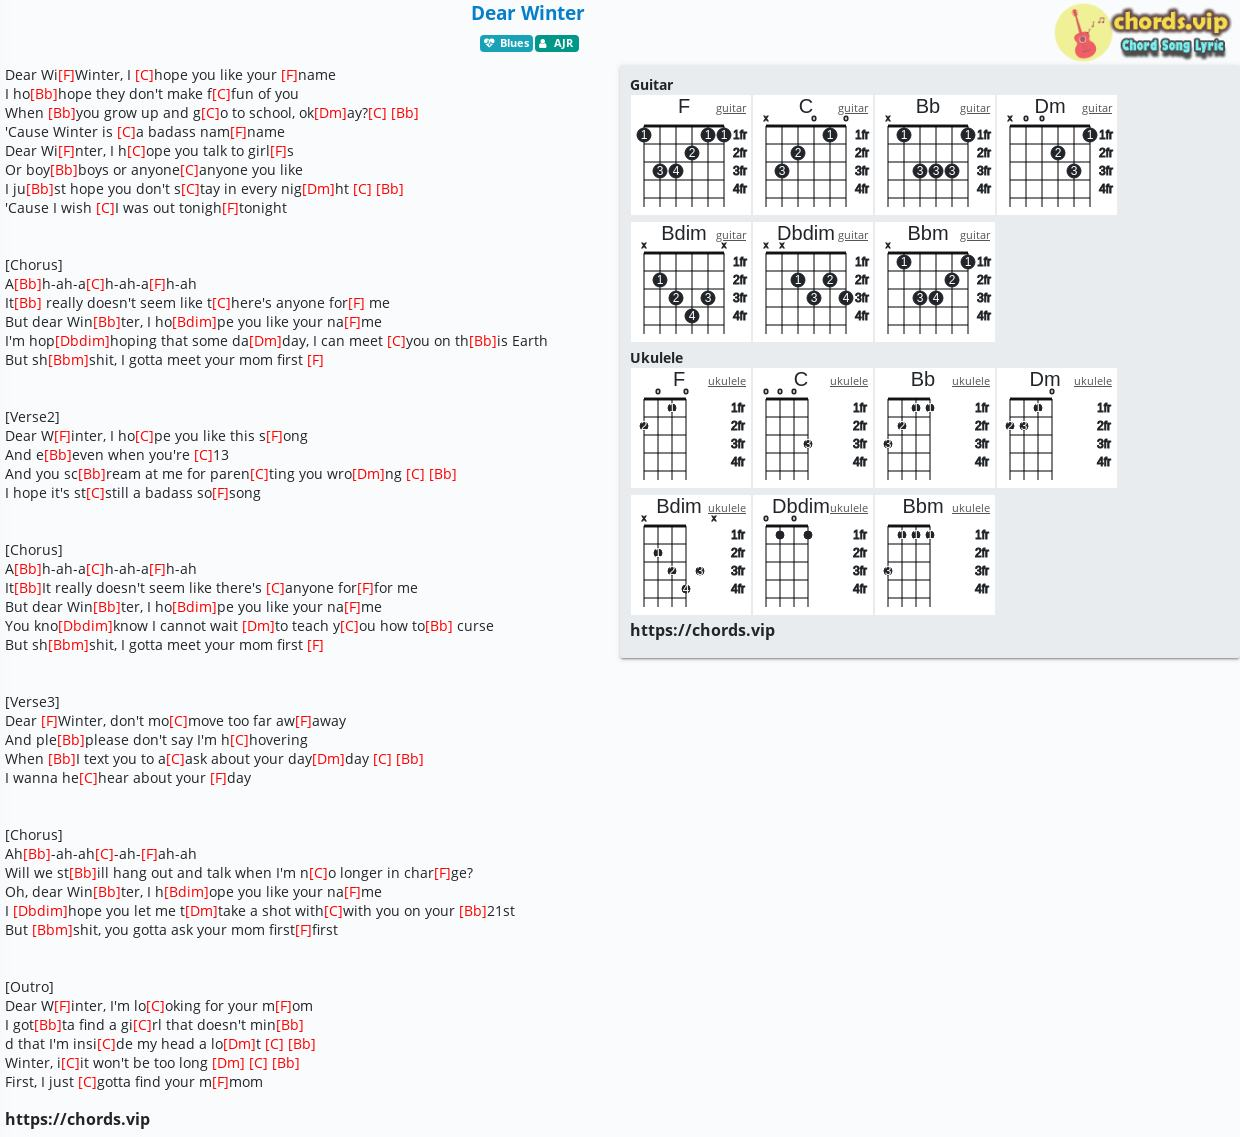 Chord Dear Winter Ajr Tab Song Lyric Sheet Guitar Ukulele Chords Vip You can enter any chord and even choose the pitch of each string. chord dear winter ajr tab song